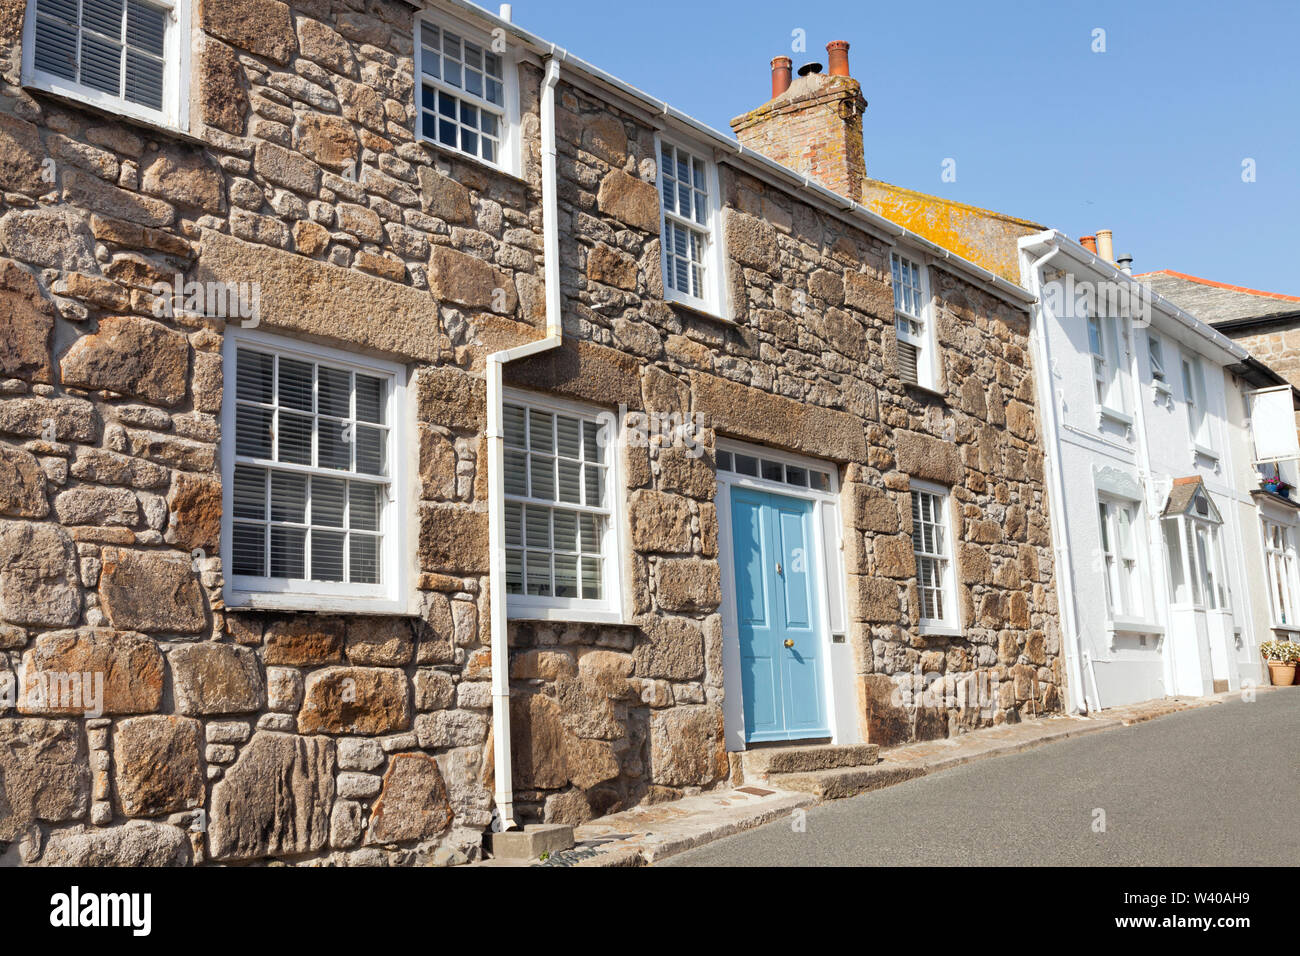 Narrow street with traditional stone houses in a coastal town of St Ives, Cornwall, United Stock Photo